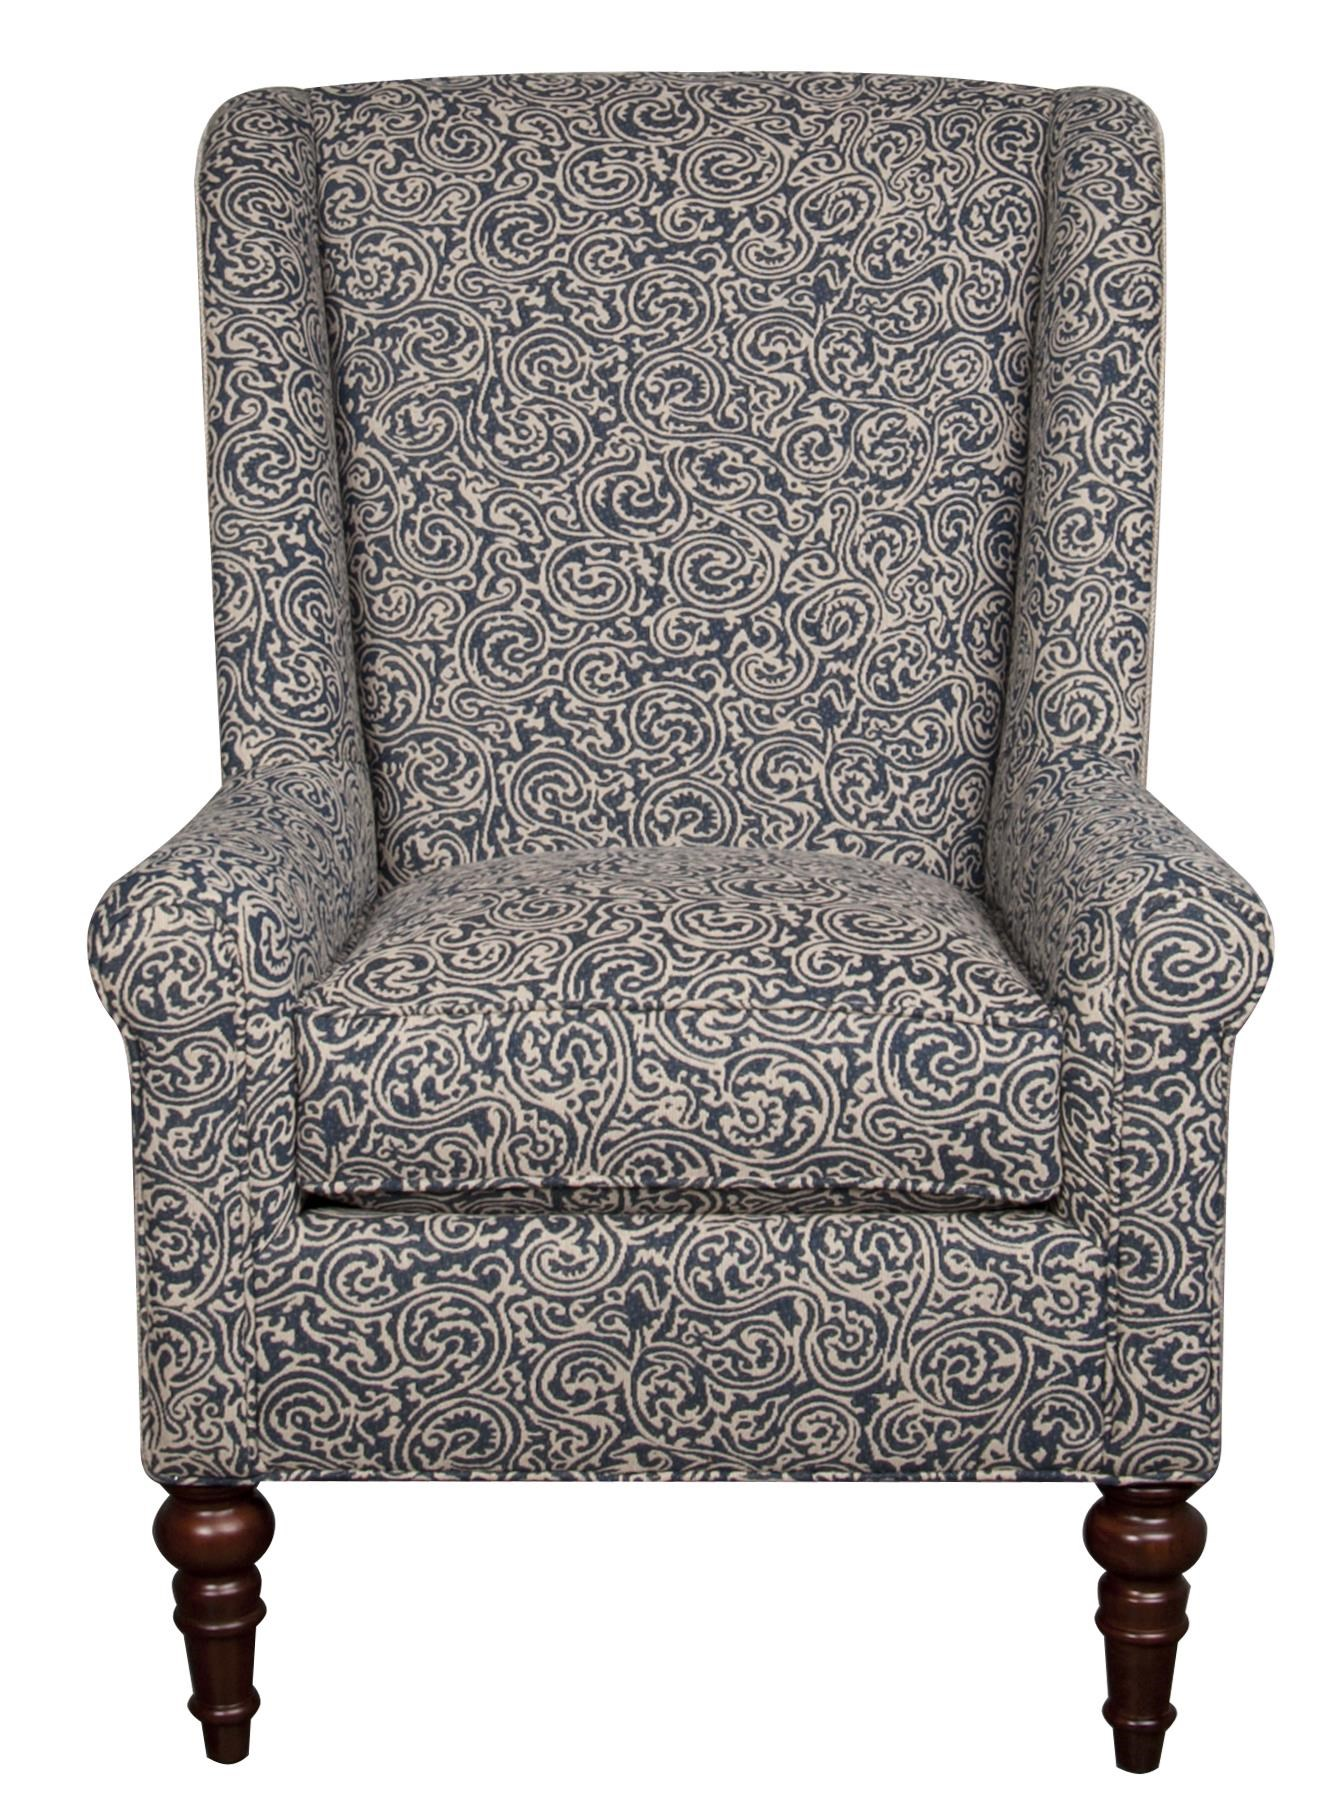 Morris Home Furnishings Hadley Hadley Accent Chair - Item Number: 148932869